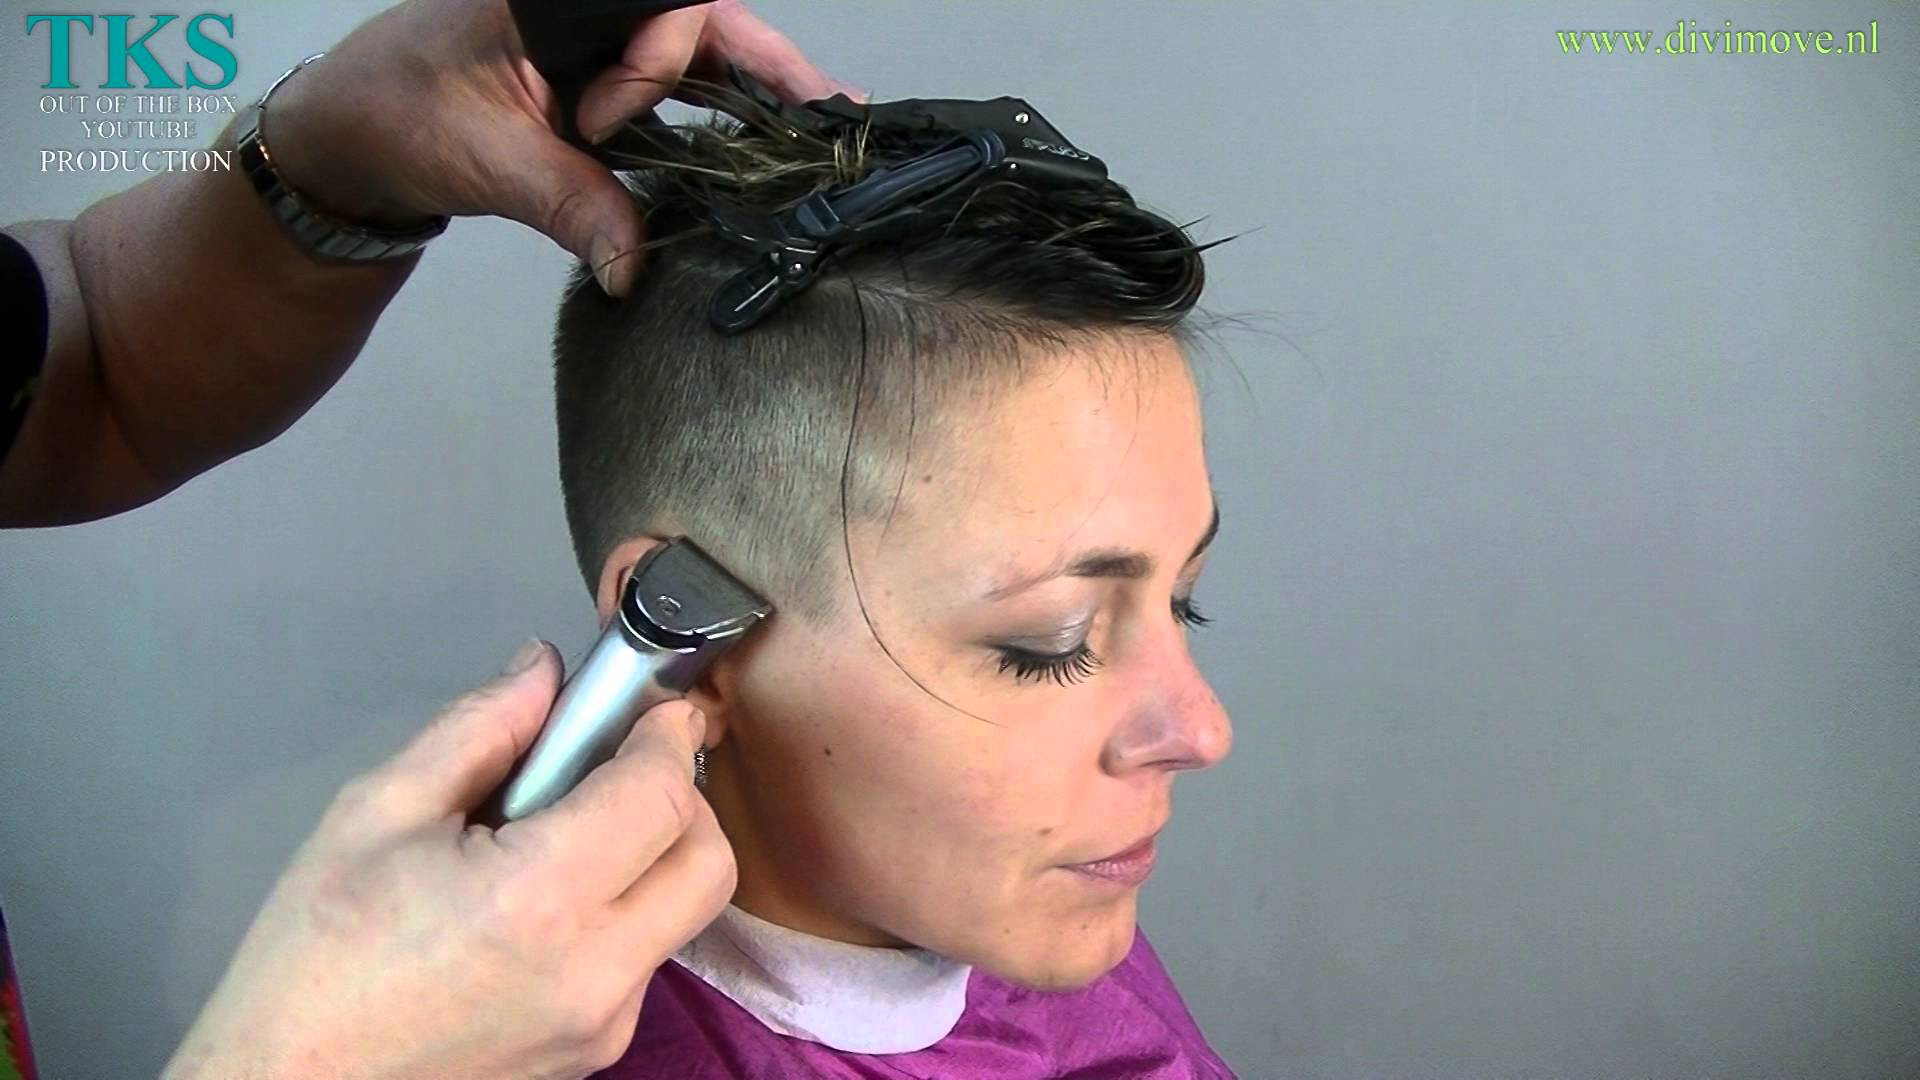 I-need-ultra-short-hair-to-feel-good-Danique-by-T.K.S.